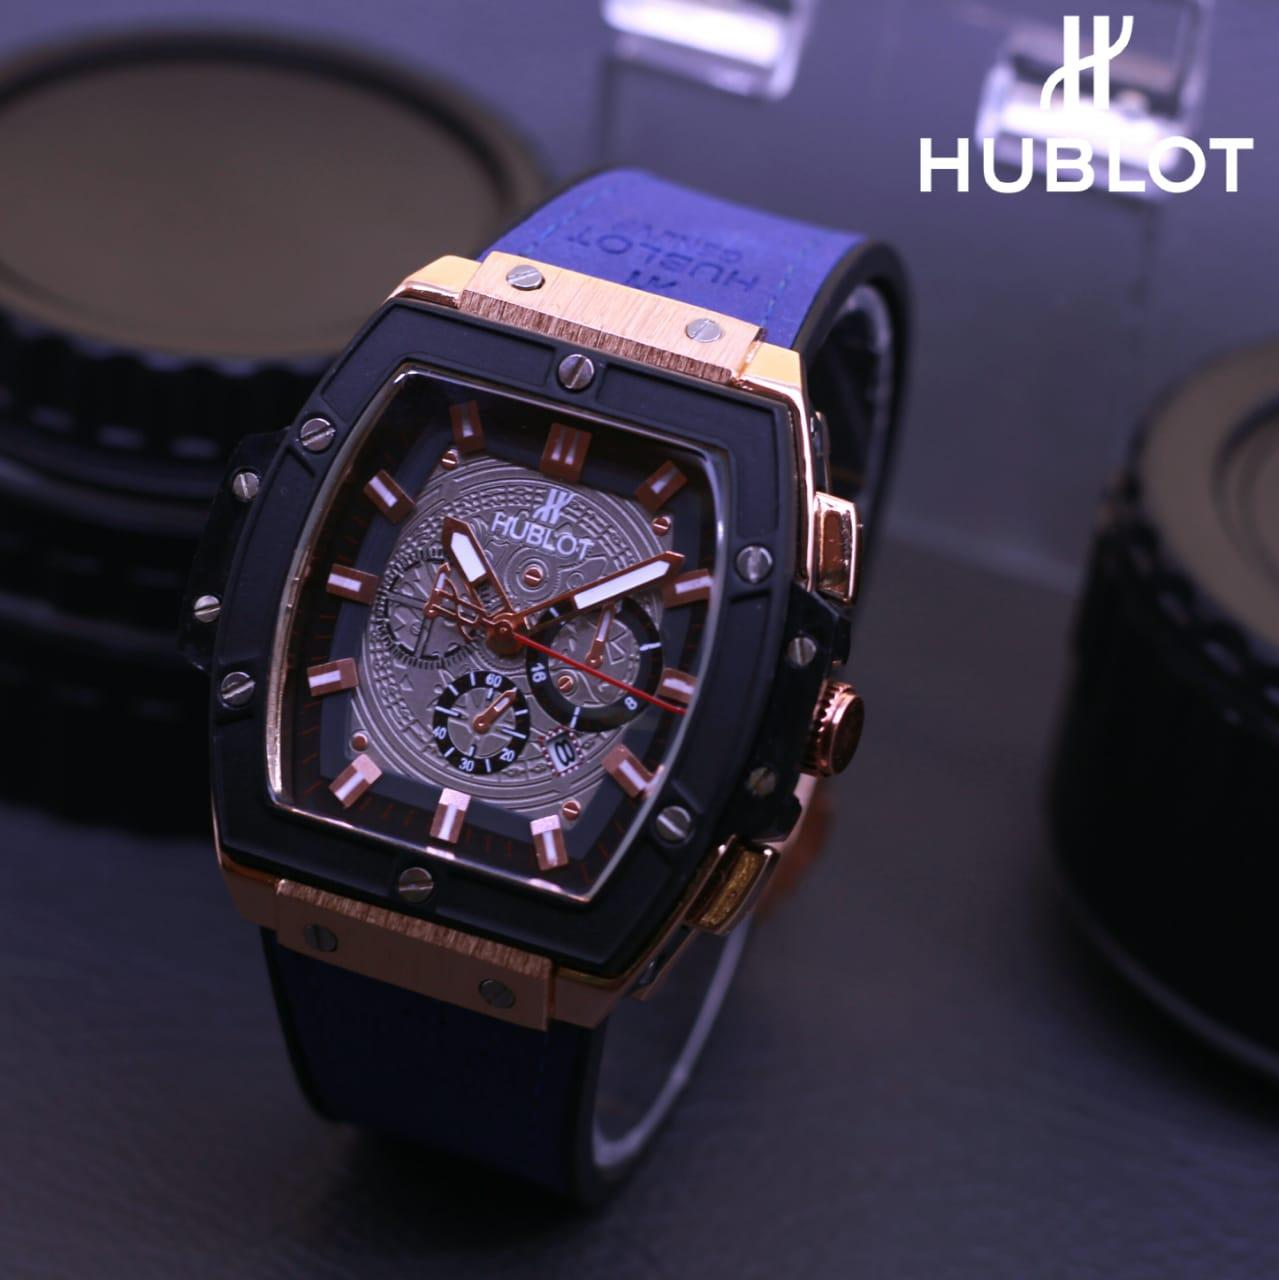 Jam Tangan Hublot Picasso - Limited Edition Elegant Series-Pria Wanita Formal Kasual Terbaru-Women or Men Luxury Watch-Leather Strap-Kulit Kanvas Army Kekinian Sporty Fashionable Bonus Zippo Premium Beam Korek Free Trend 2018